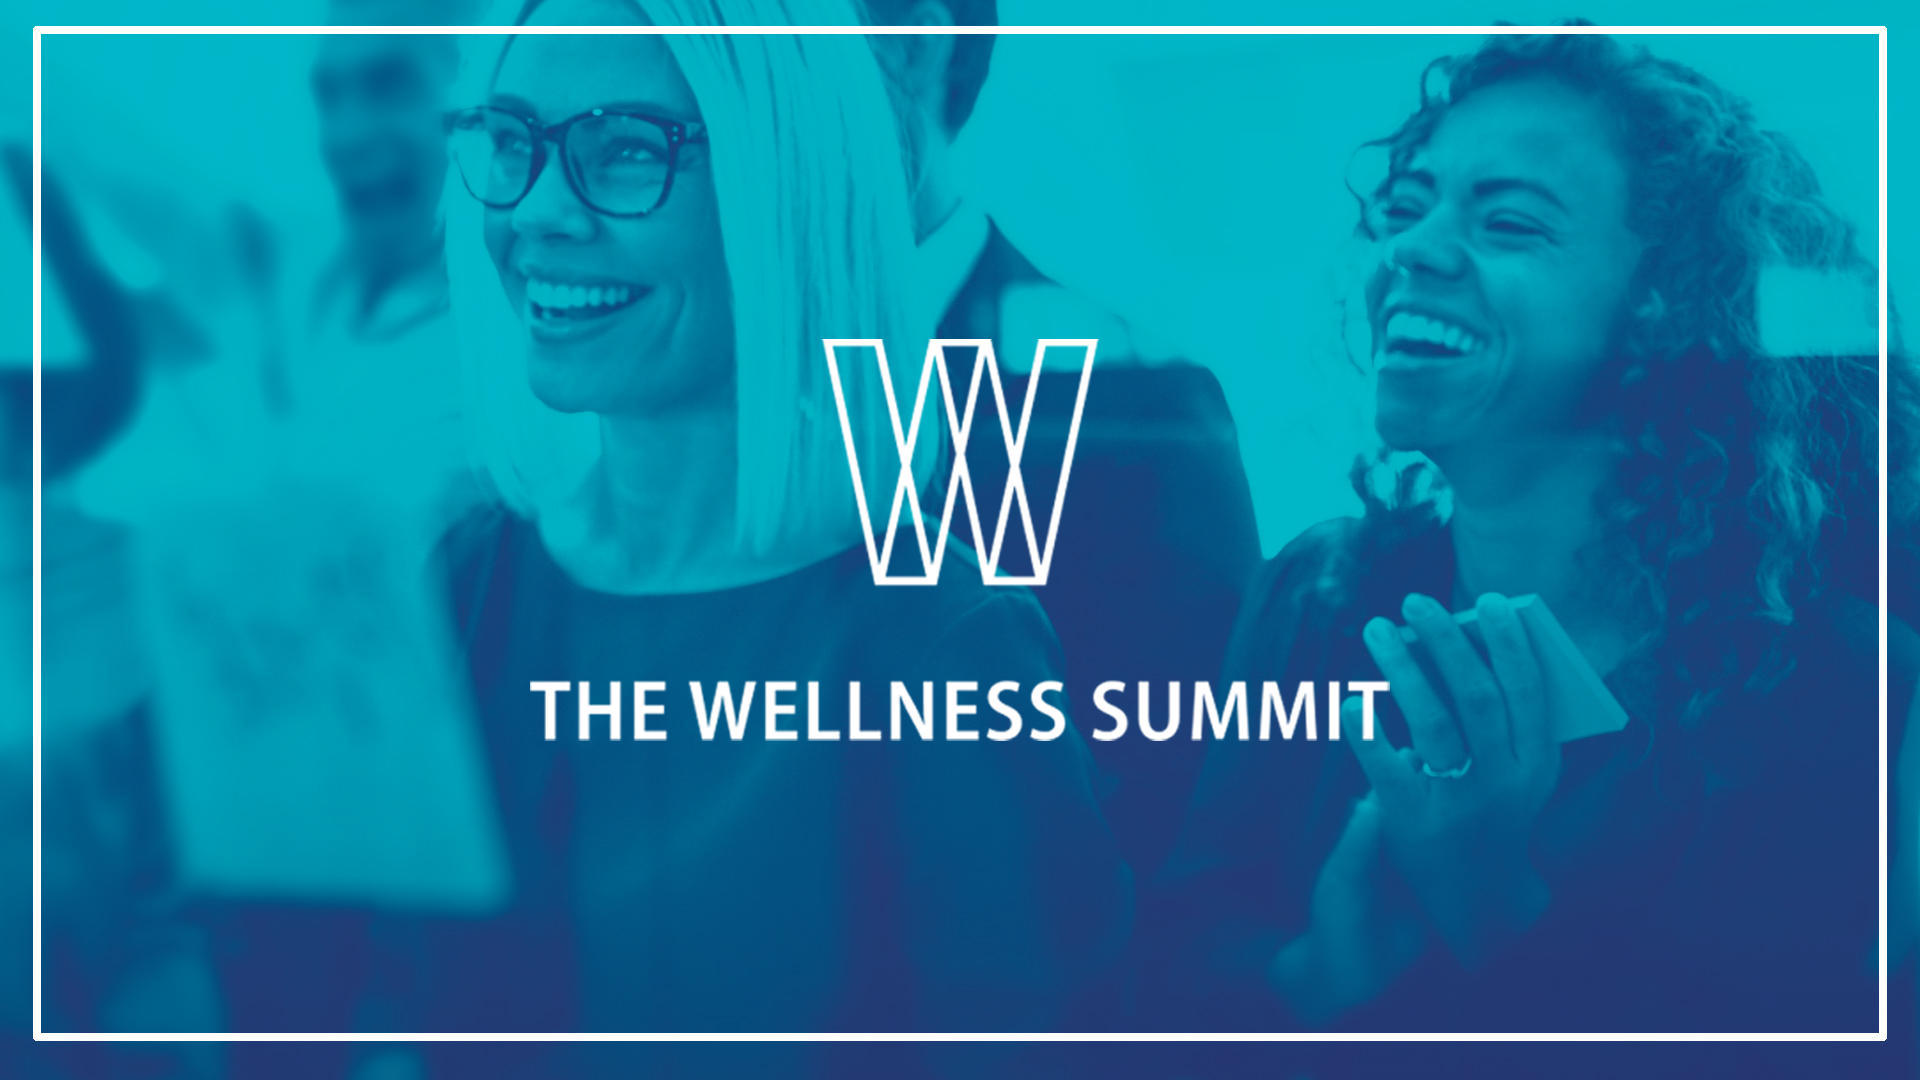 A blue duotone image of two women sticky post-its to a window. Over the image there is the headline: The Wellness Summit.